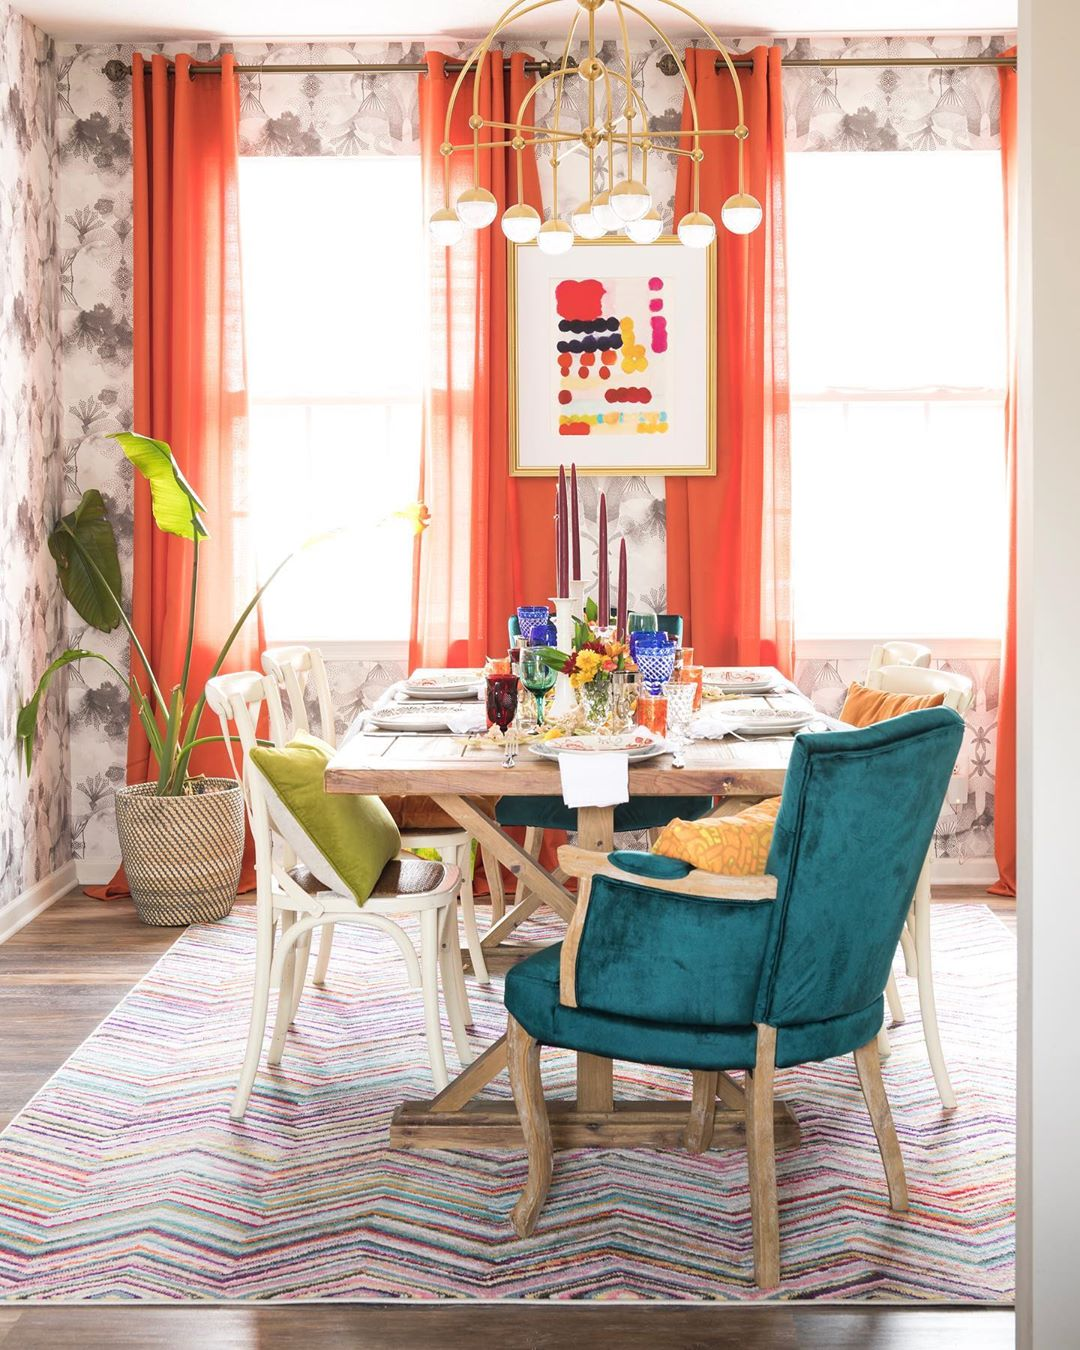 6 Dining Room Trends For The Next Decade You Need To Know About_6